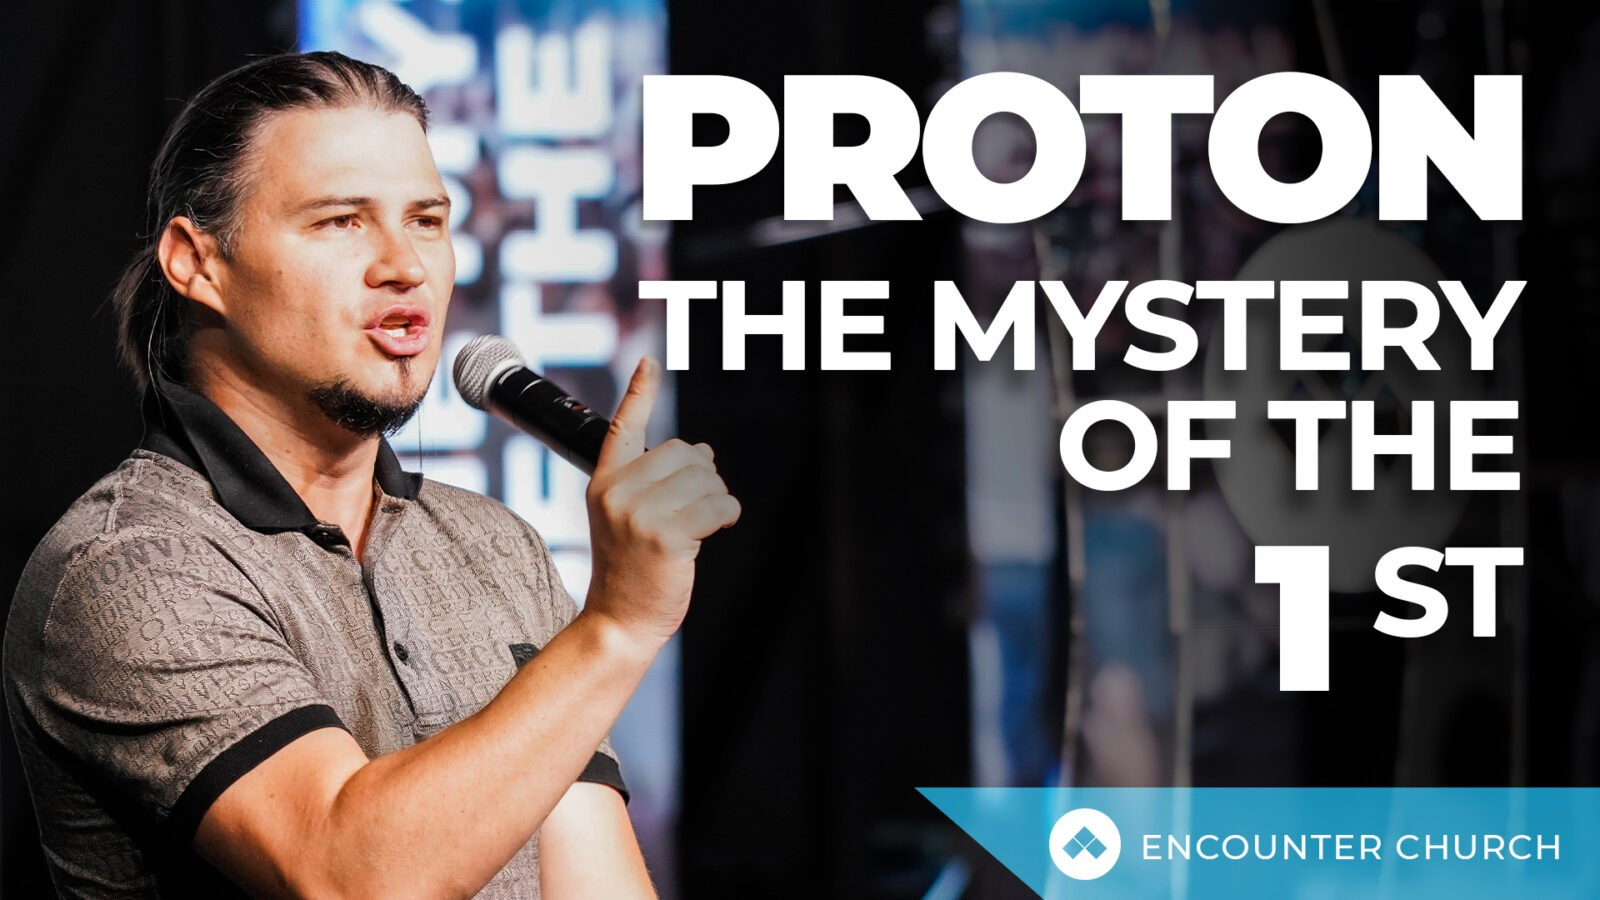 Proton – The Mystery of the First